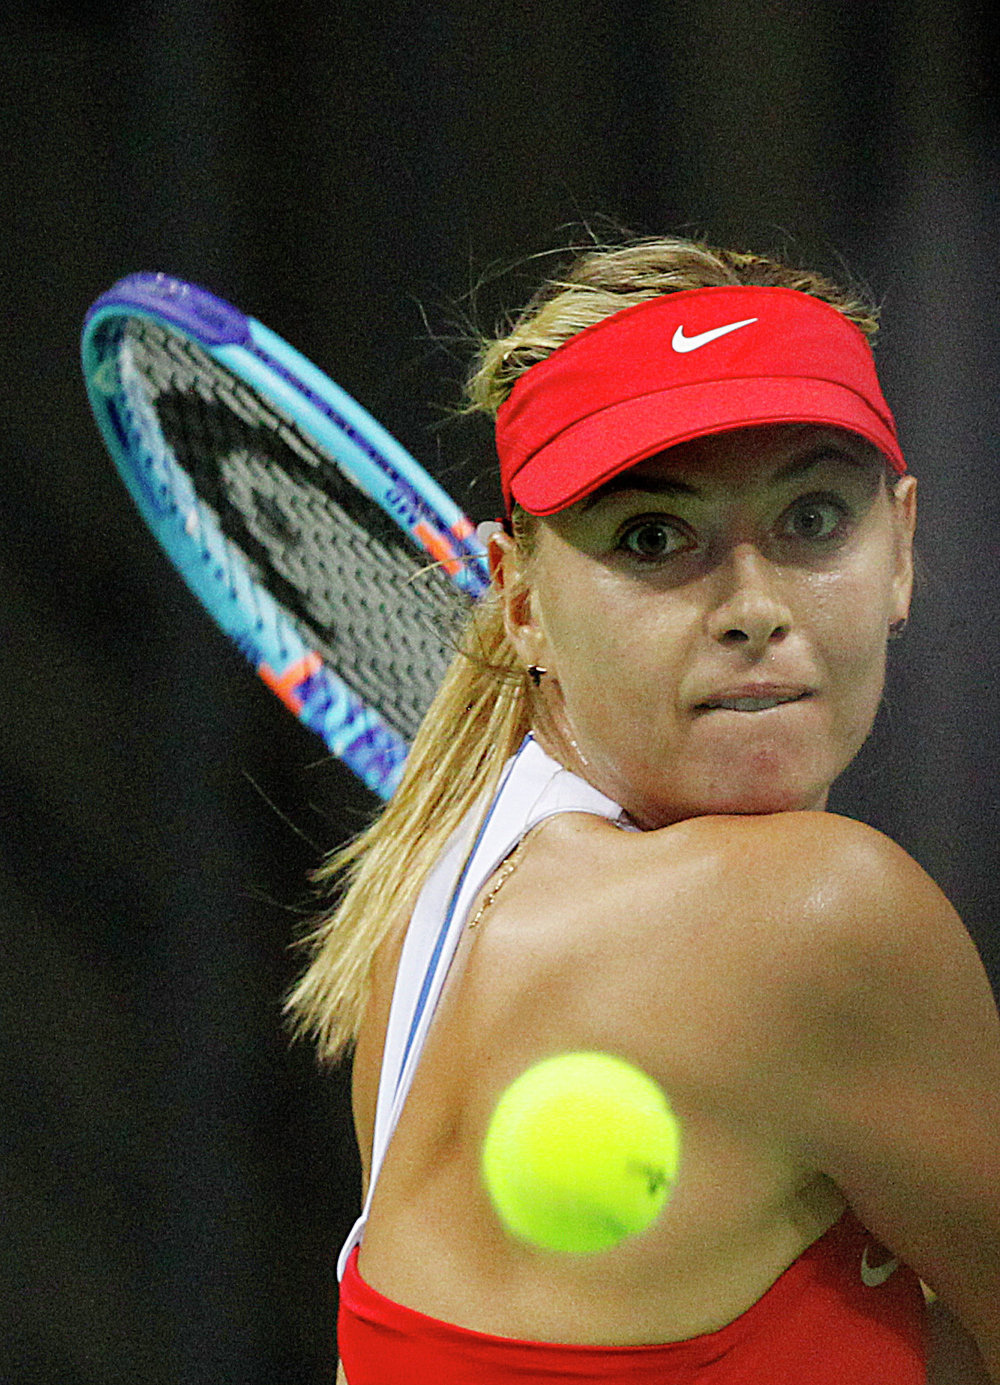 Maria Sharapova of Russia returns a ball to Agnieszka Radwanska of Poland during the Fed Cup World Group first round tennis match between Poland and Russia in Krakow, Poland, Sunday, Feb. 8, 2015